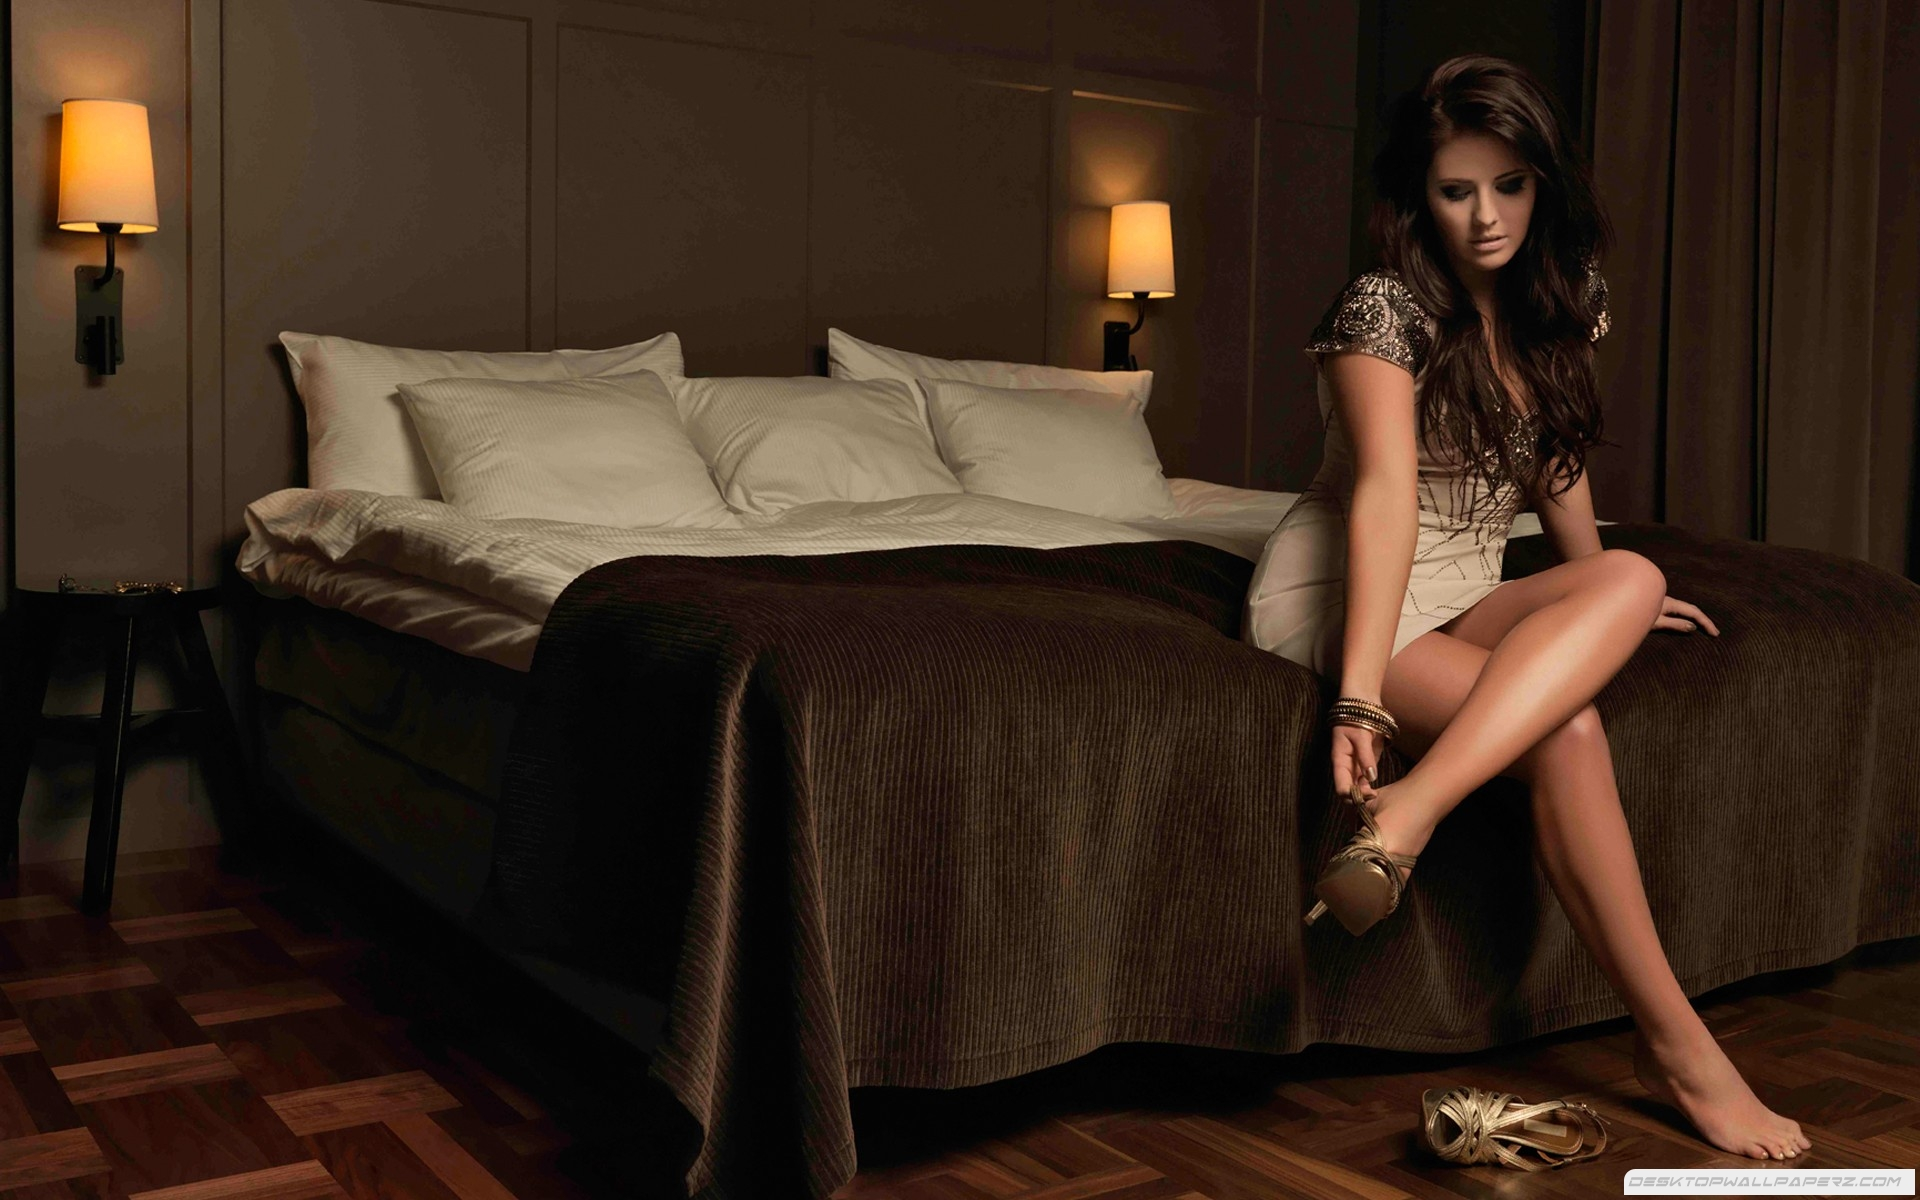 Brunettes Girl Legs Long Hair Shoes Pillows Sitting In Hotel Room Beds 1920x1200